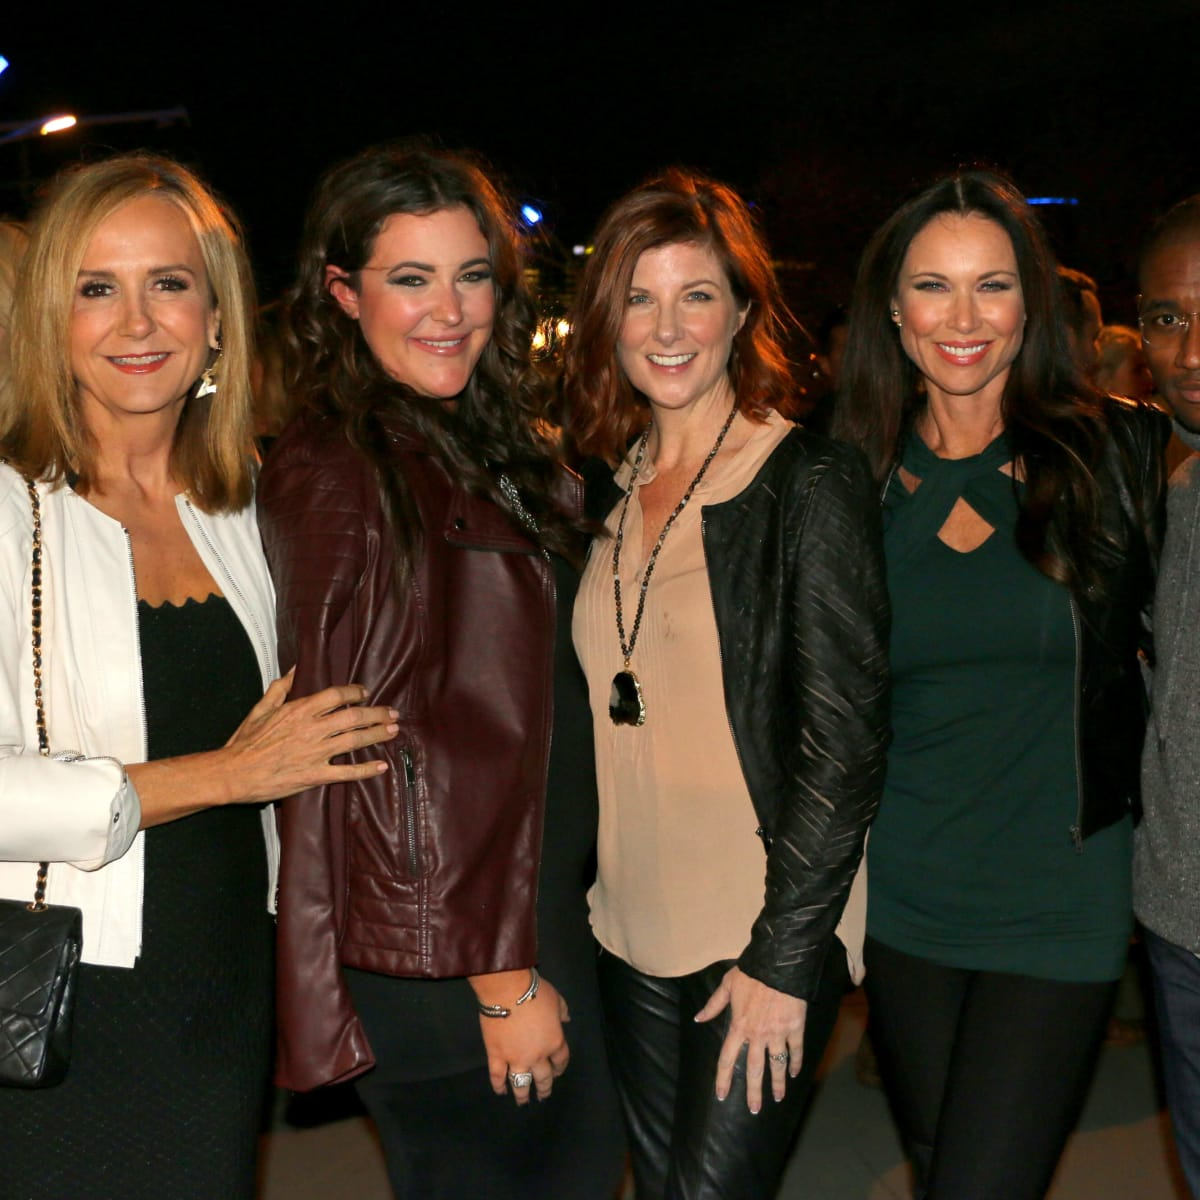 Jane McGarry, Caroline Kraddick, Cynthia Smoot, LeeAnne Locken, Hamilton Sneed